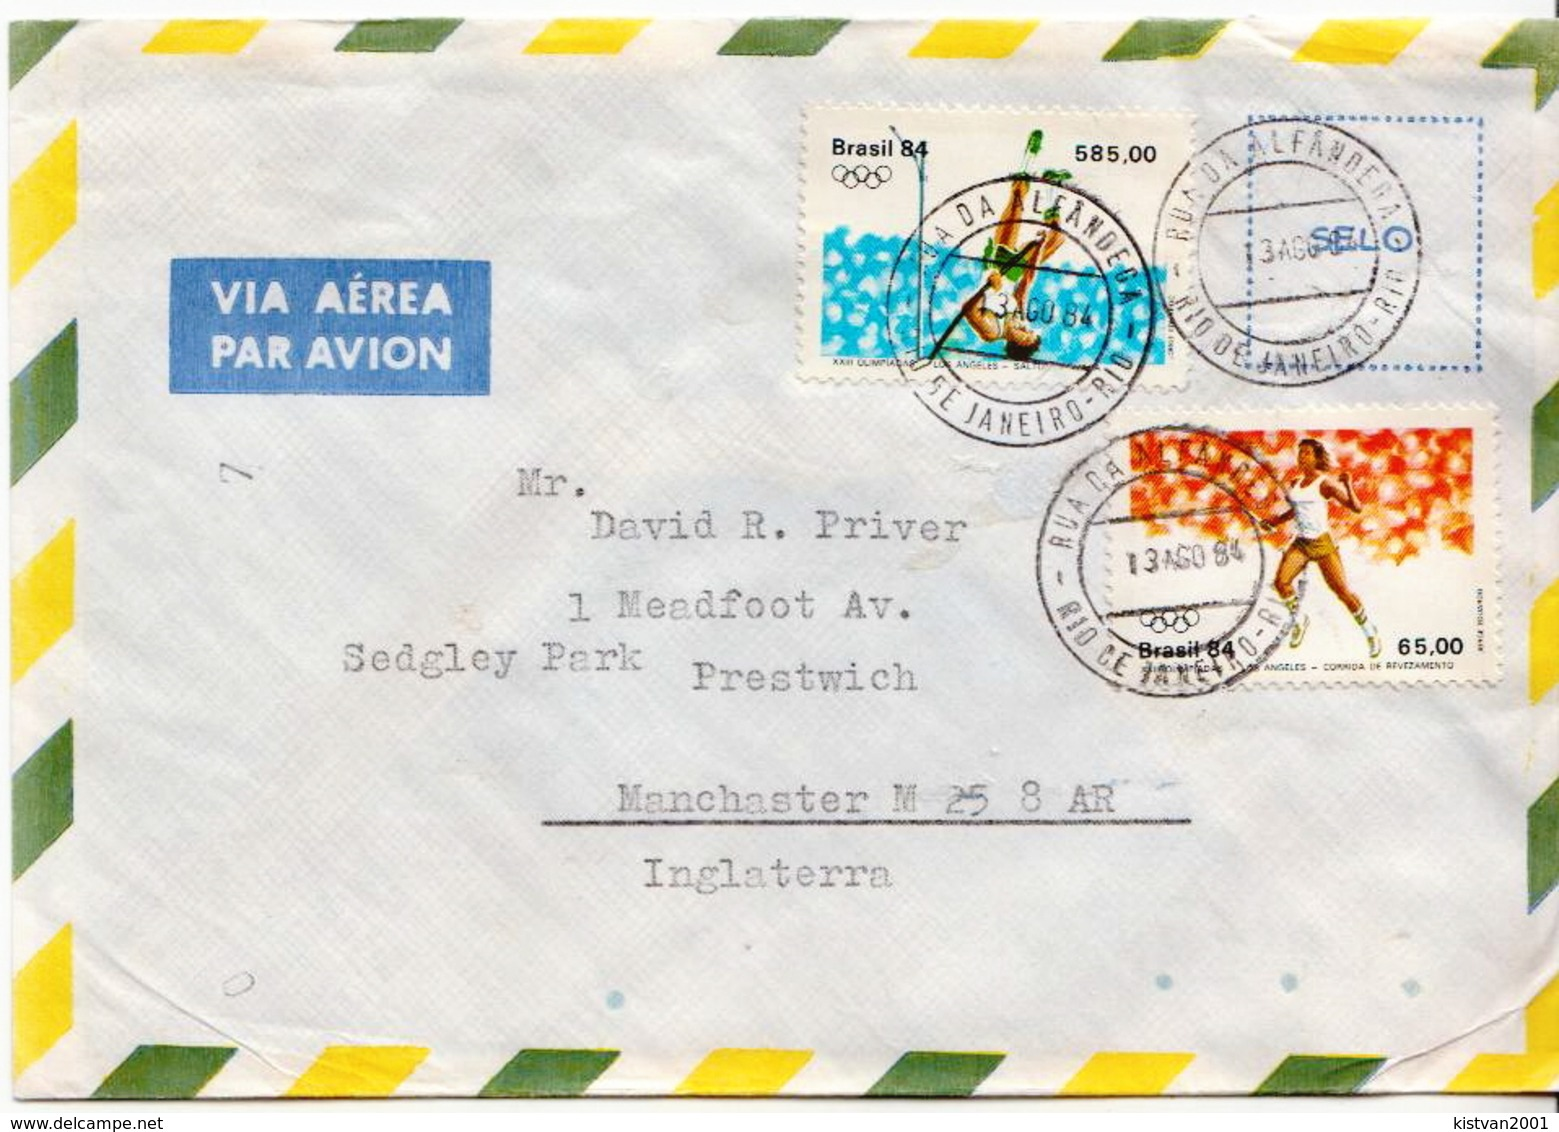 Postal History Cover: Brazil Stamps On Cover - Summer 1984: Los Angeles